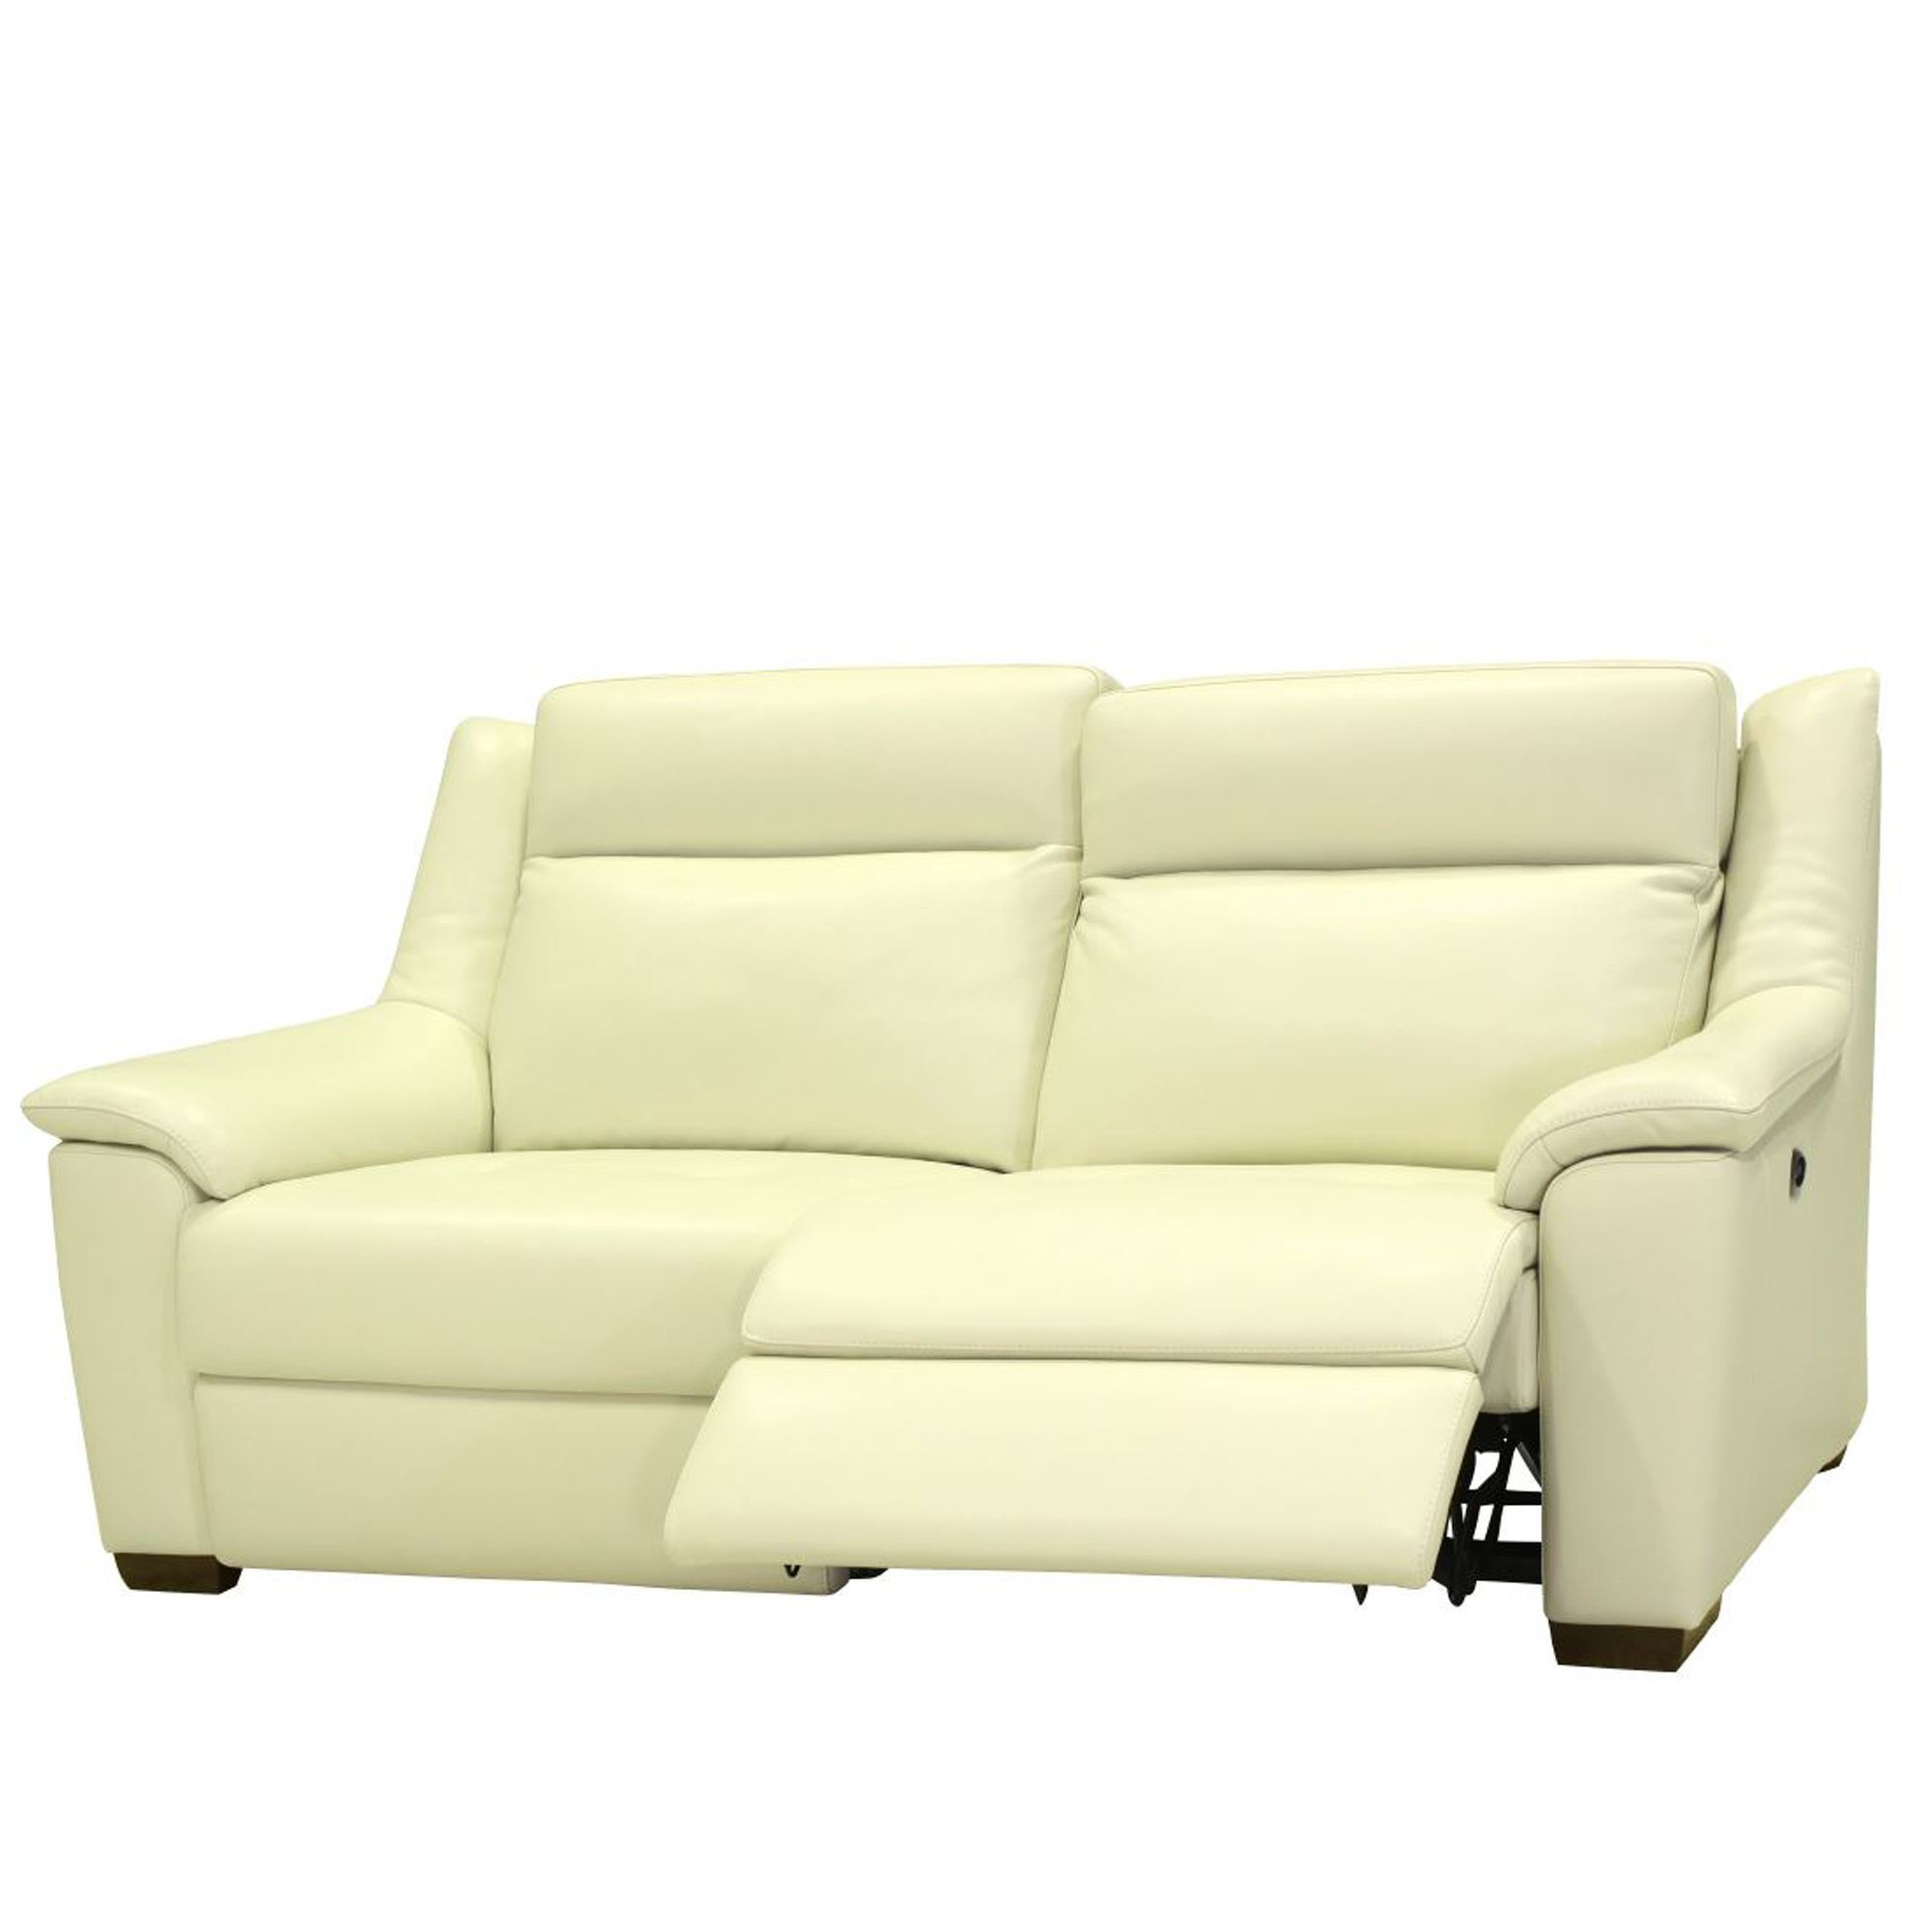 grid recliner hand sneakerwhite electric and ultimate sofa option end leather chaise gl right facing c reclining look dfs